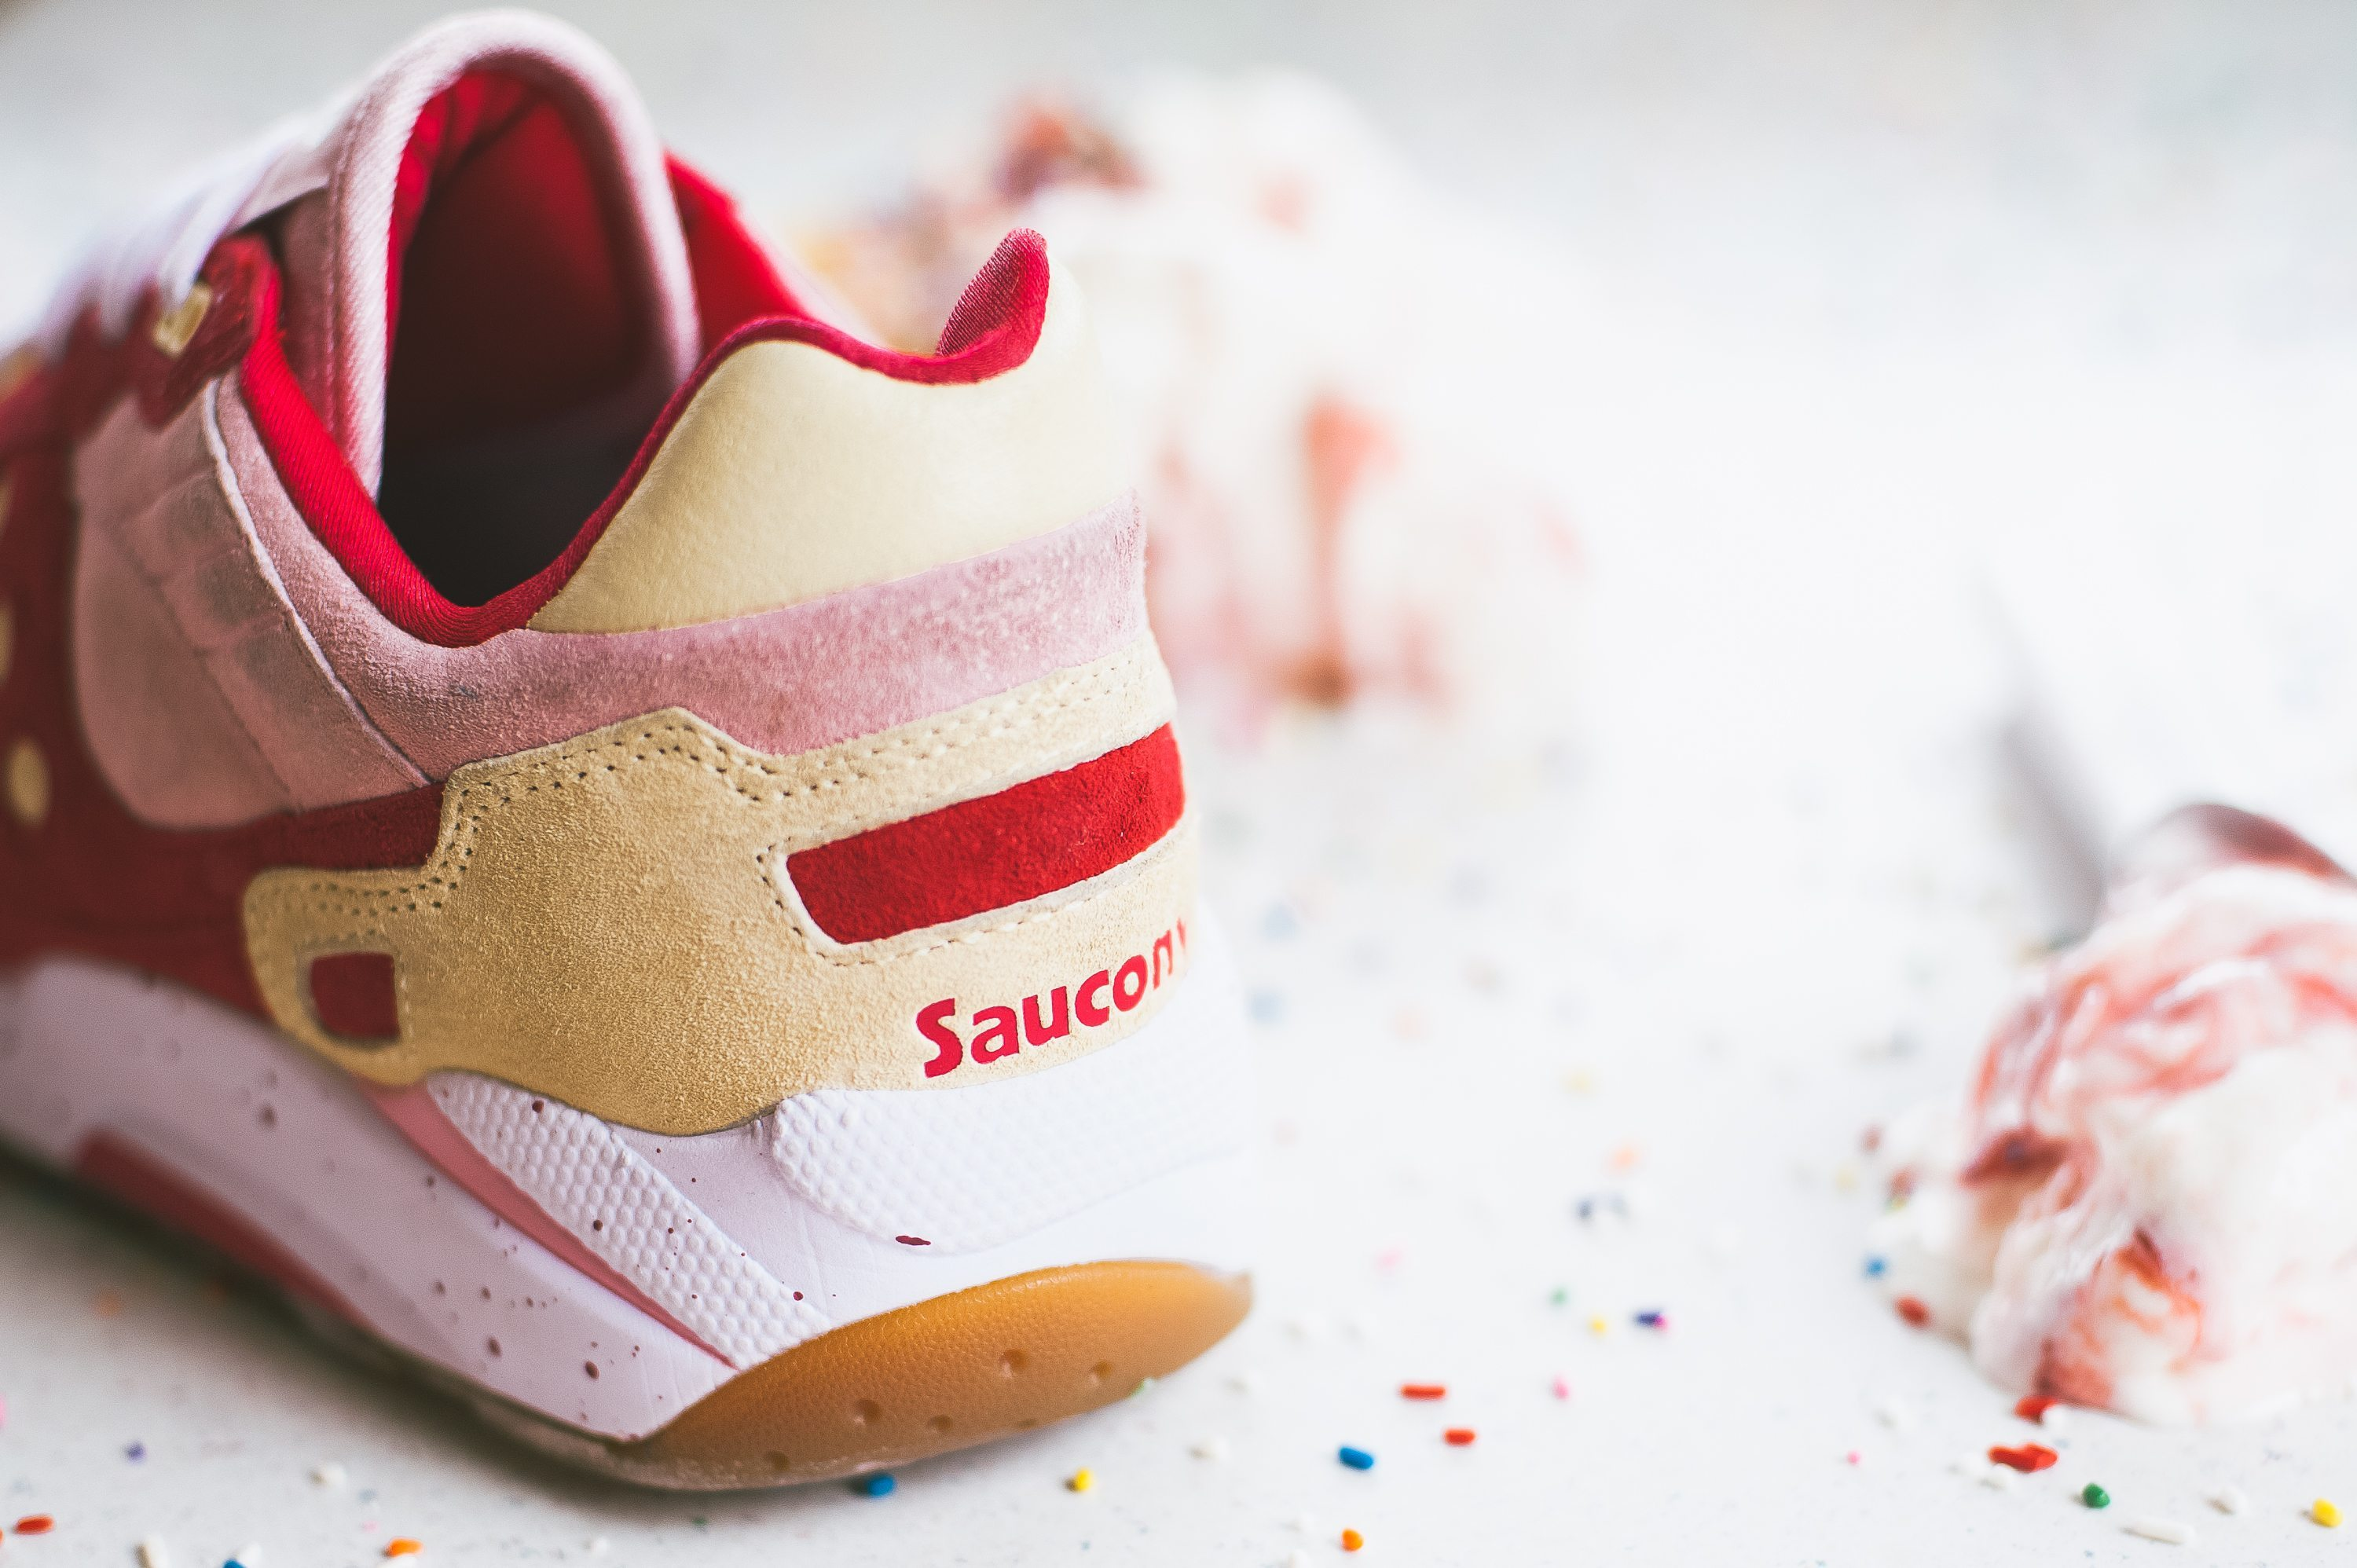 Saucony Originals Scoops Pack G9 Shadow 5 Strawberry Vanilla 2